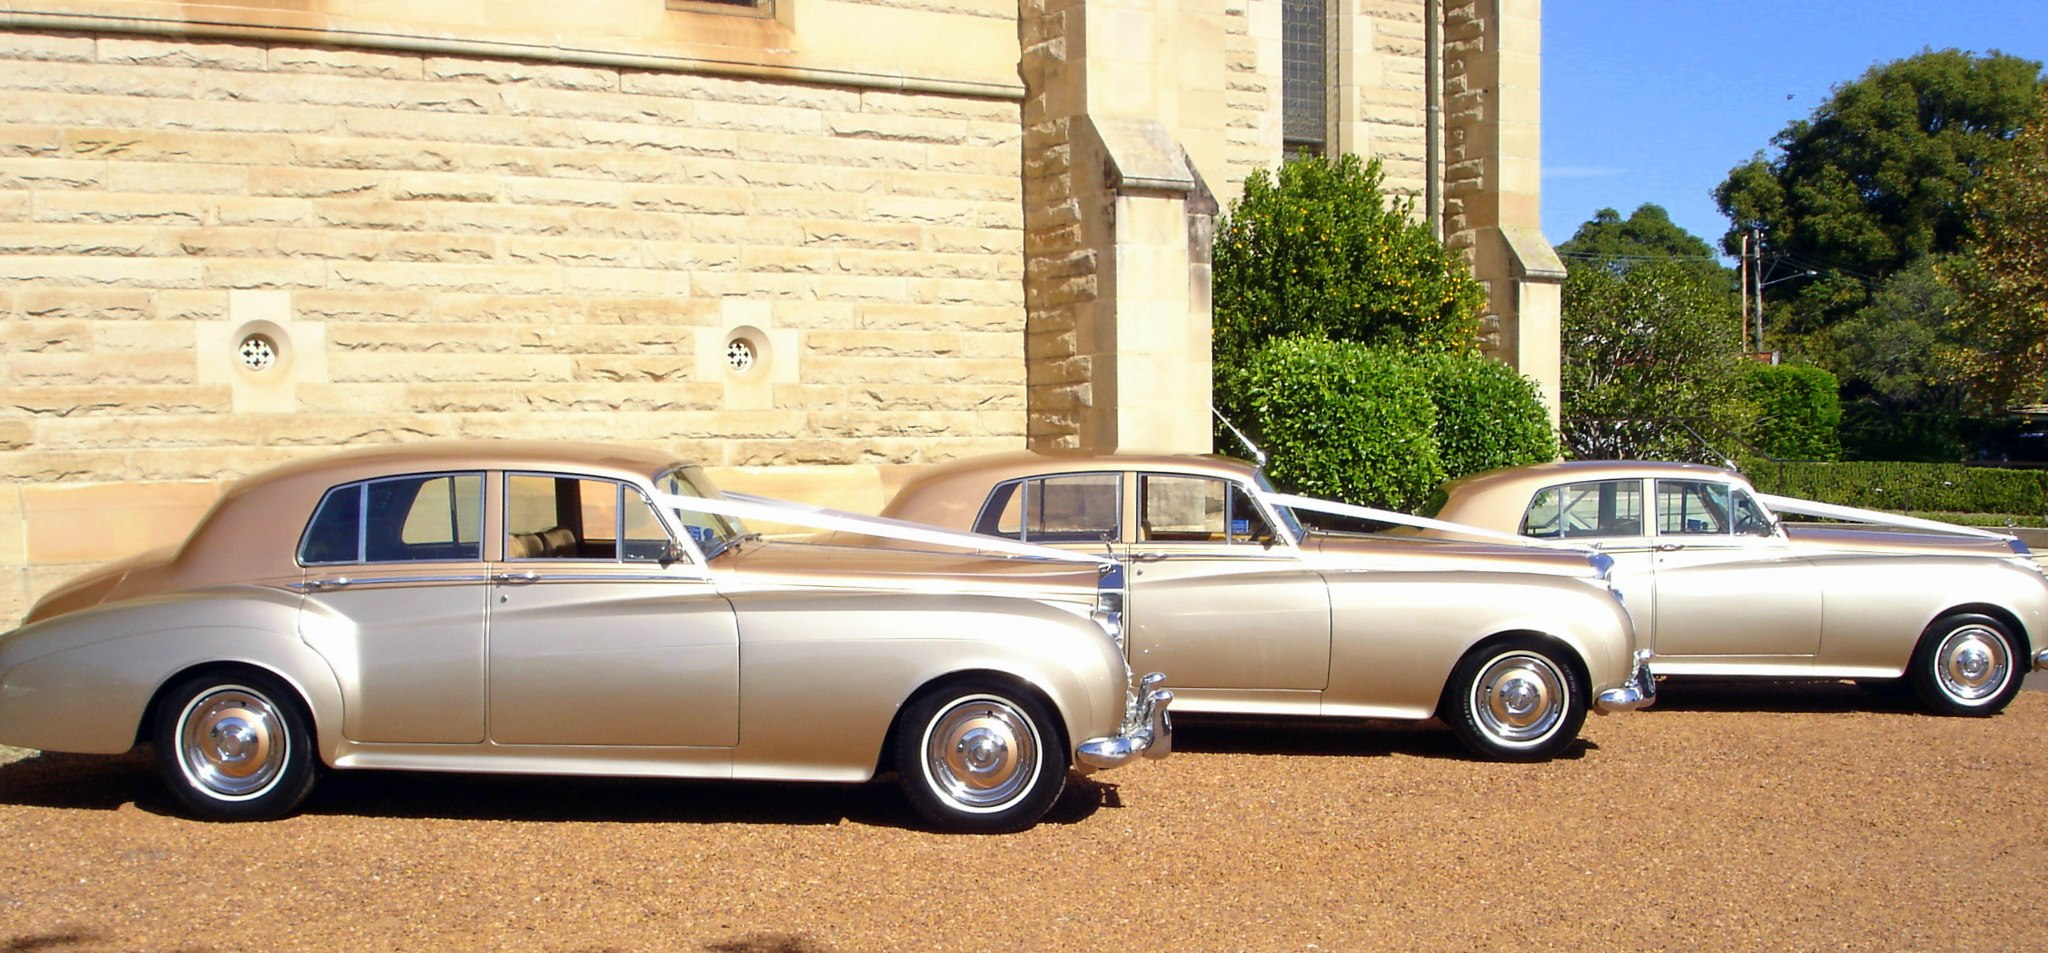 Rolls Royce For Hire >> Limo Hire Sydney | 7th Heaven Wedding Cars at itsHIRED.com.au